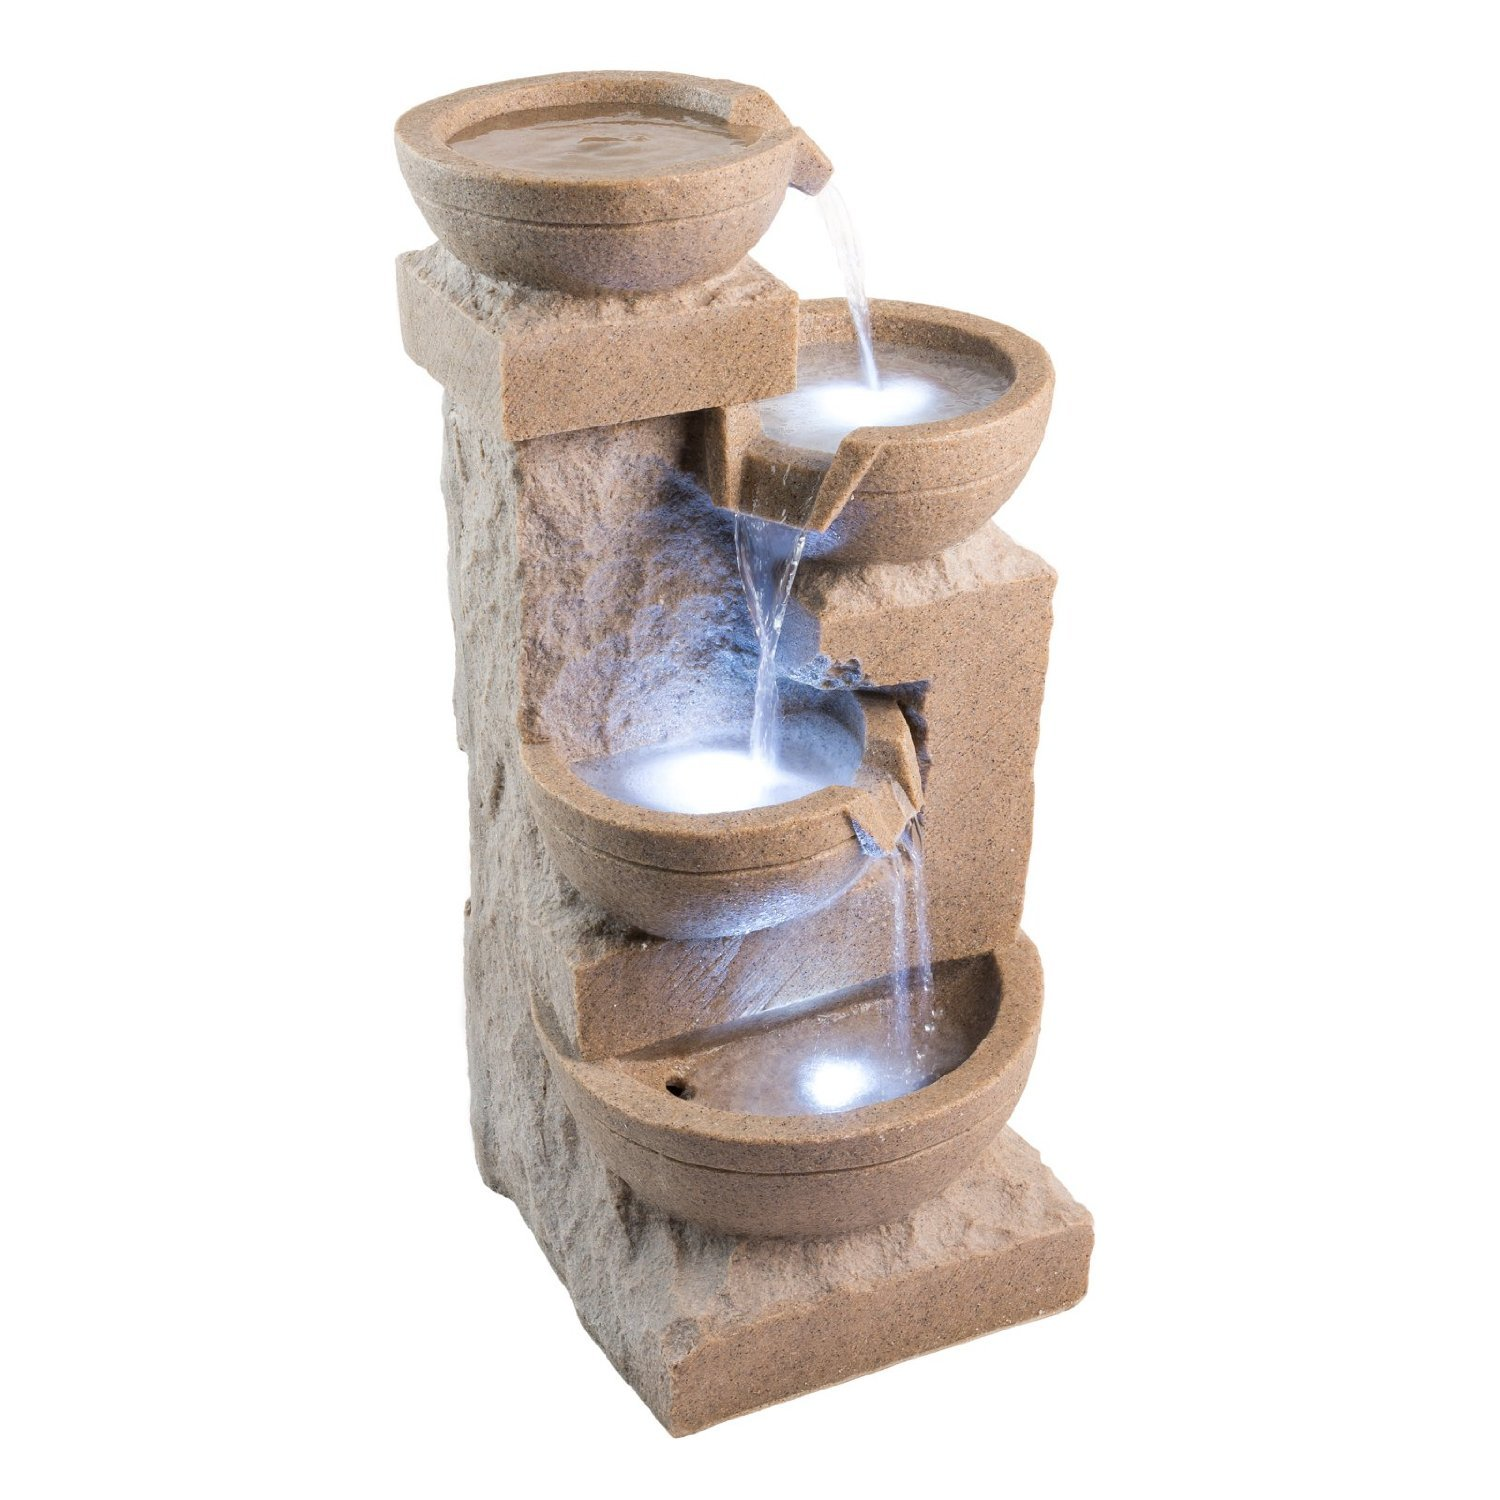 White Sand Bowl Fountain: Outdoor Water Feature for Gardens & Patios. Weather Resistant Resin. Includes LED Lights & Pump.